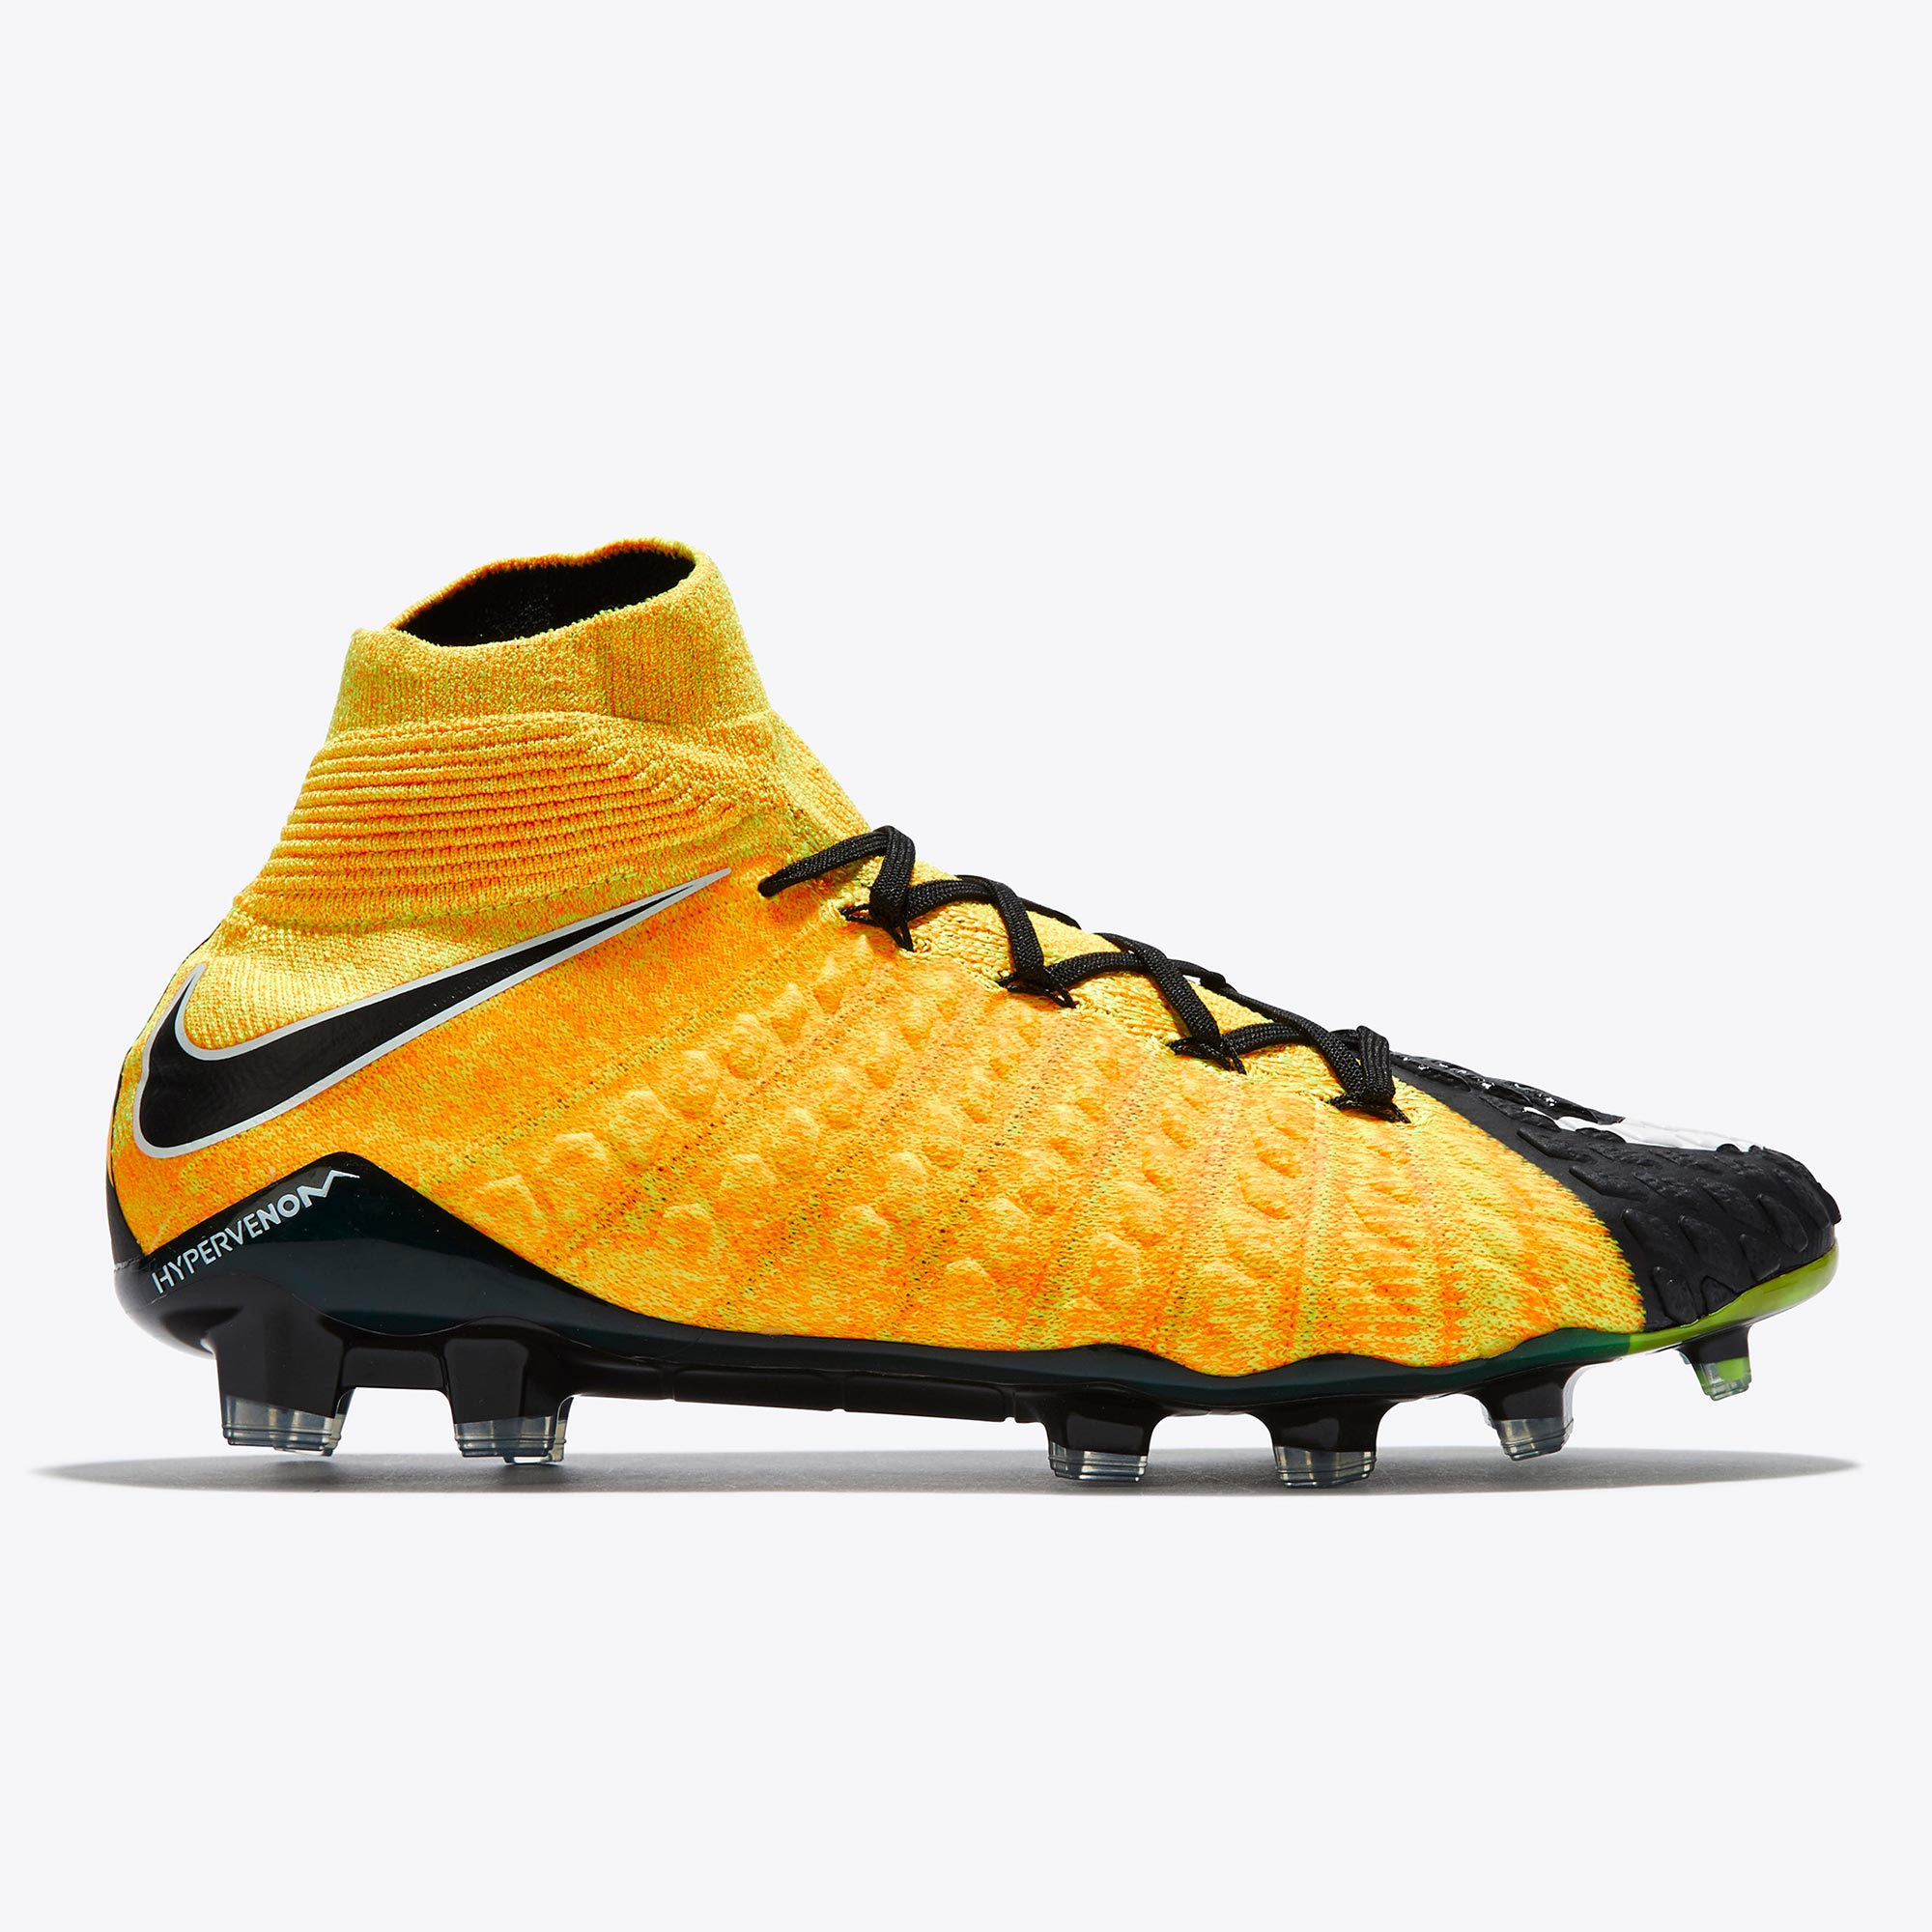 Nike Hypervenom Phantom III Dynamic Fit Firm Ground Football Boots - L